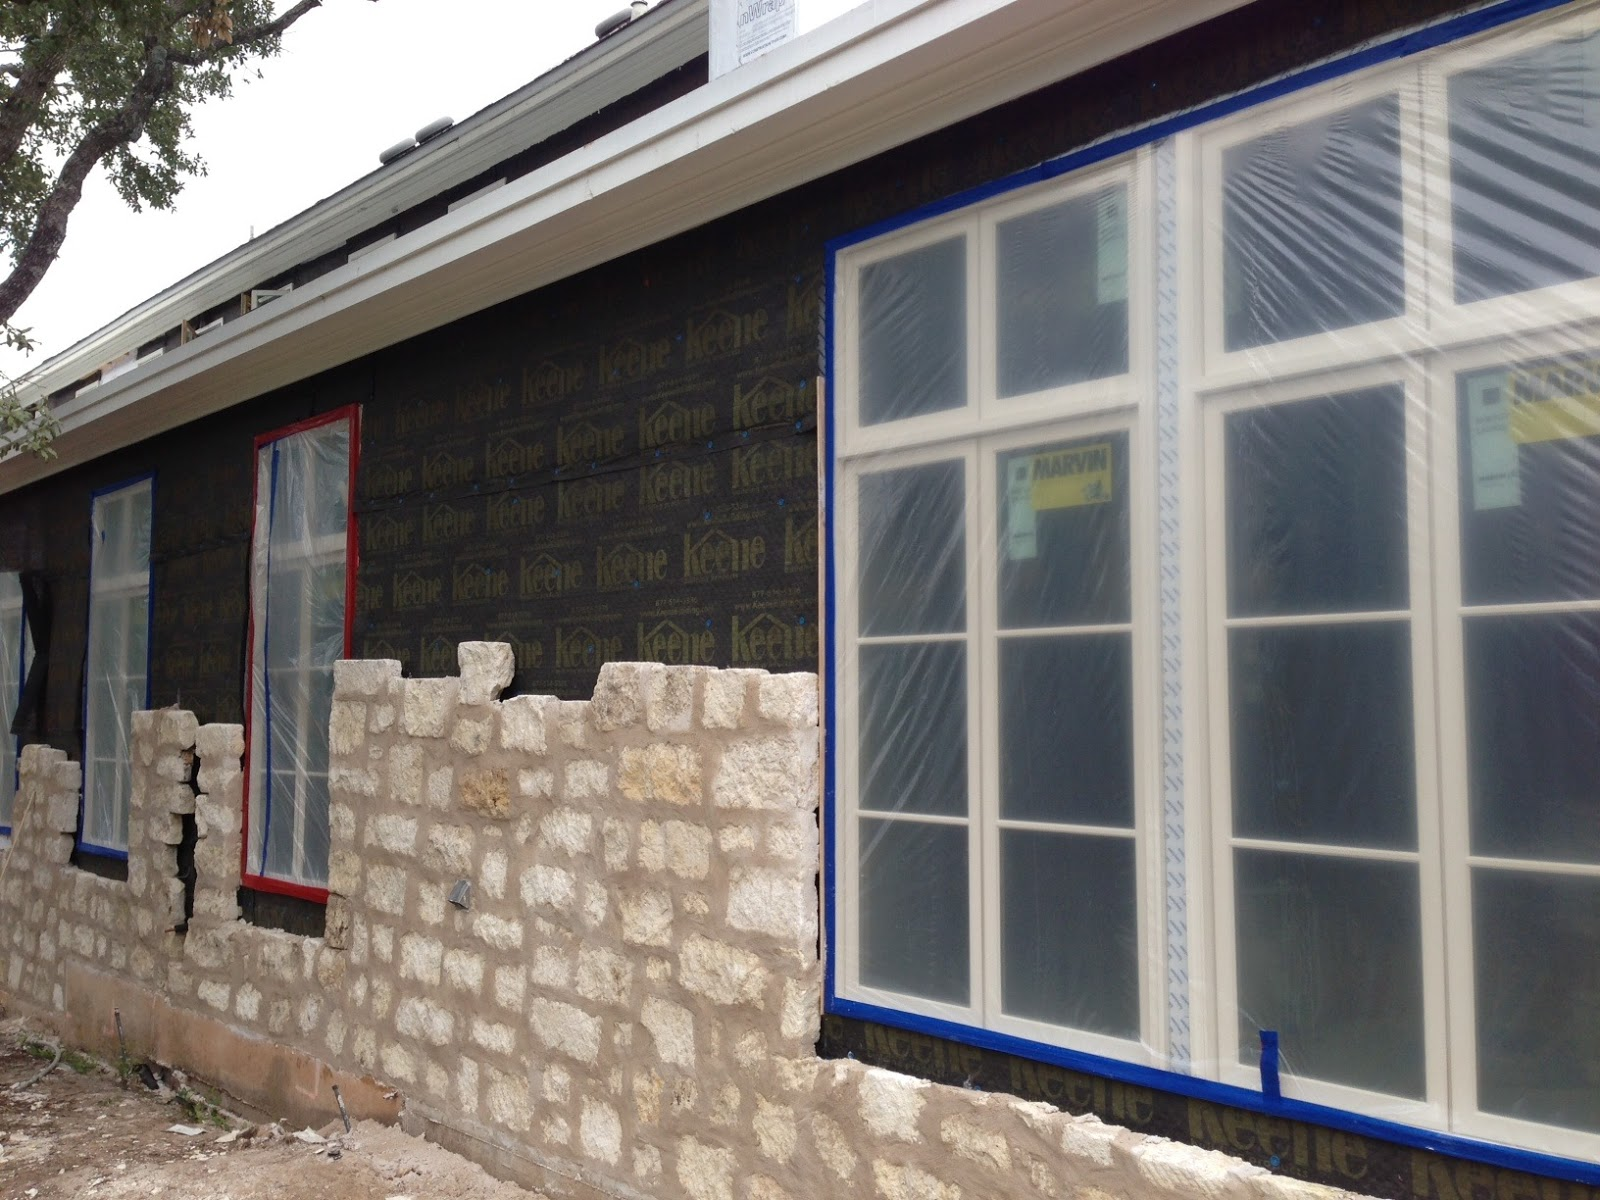 Best Practices Methods For Installing Brick Or Stone Veneer Fine Wiring A House 4th Edition Completely Revised And Updated Photo Shows Tyvek Drainwrap But Id Use Commercialwrap Without The Crinkles Lower Perm Rating